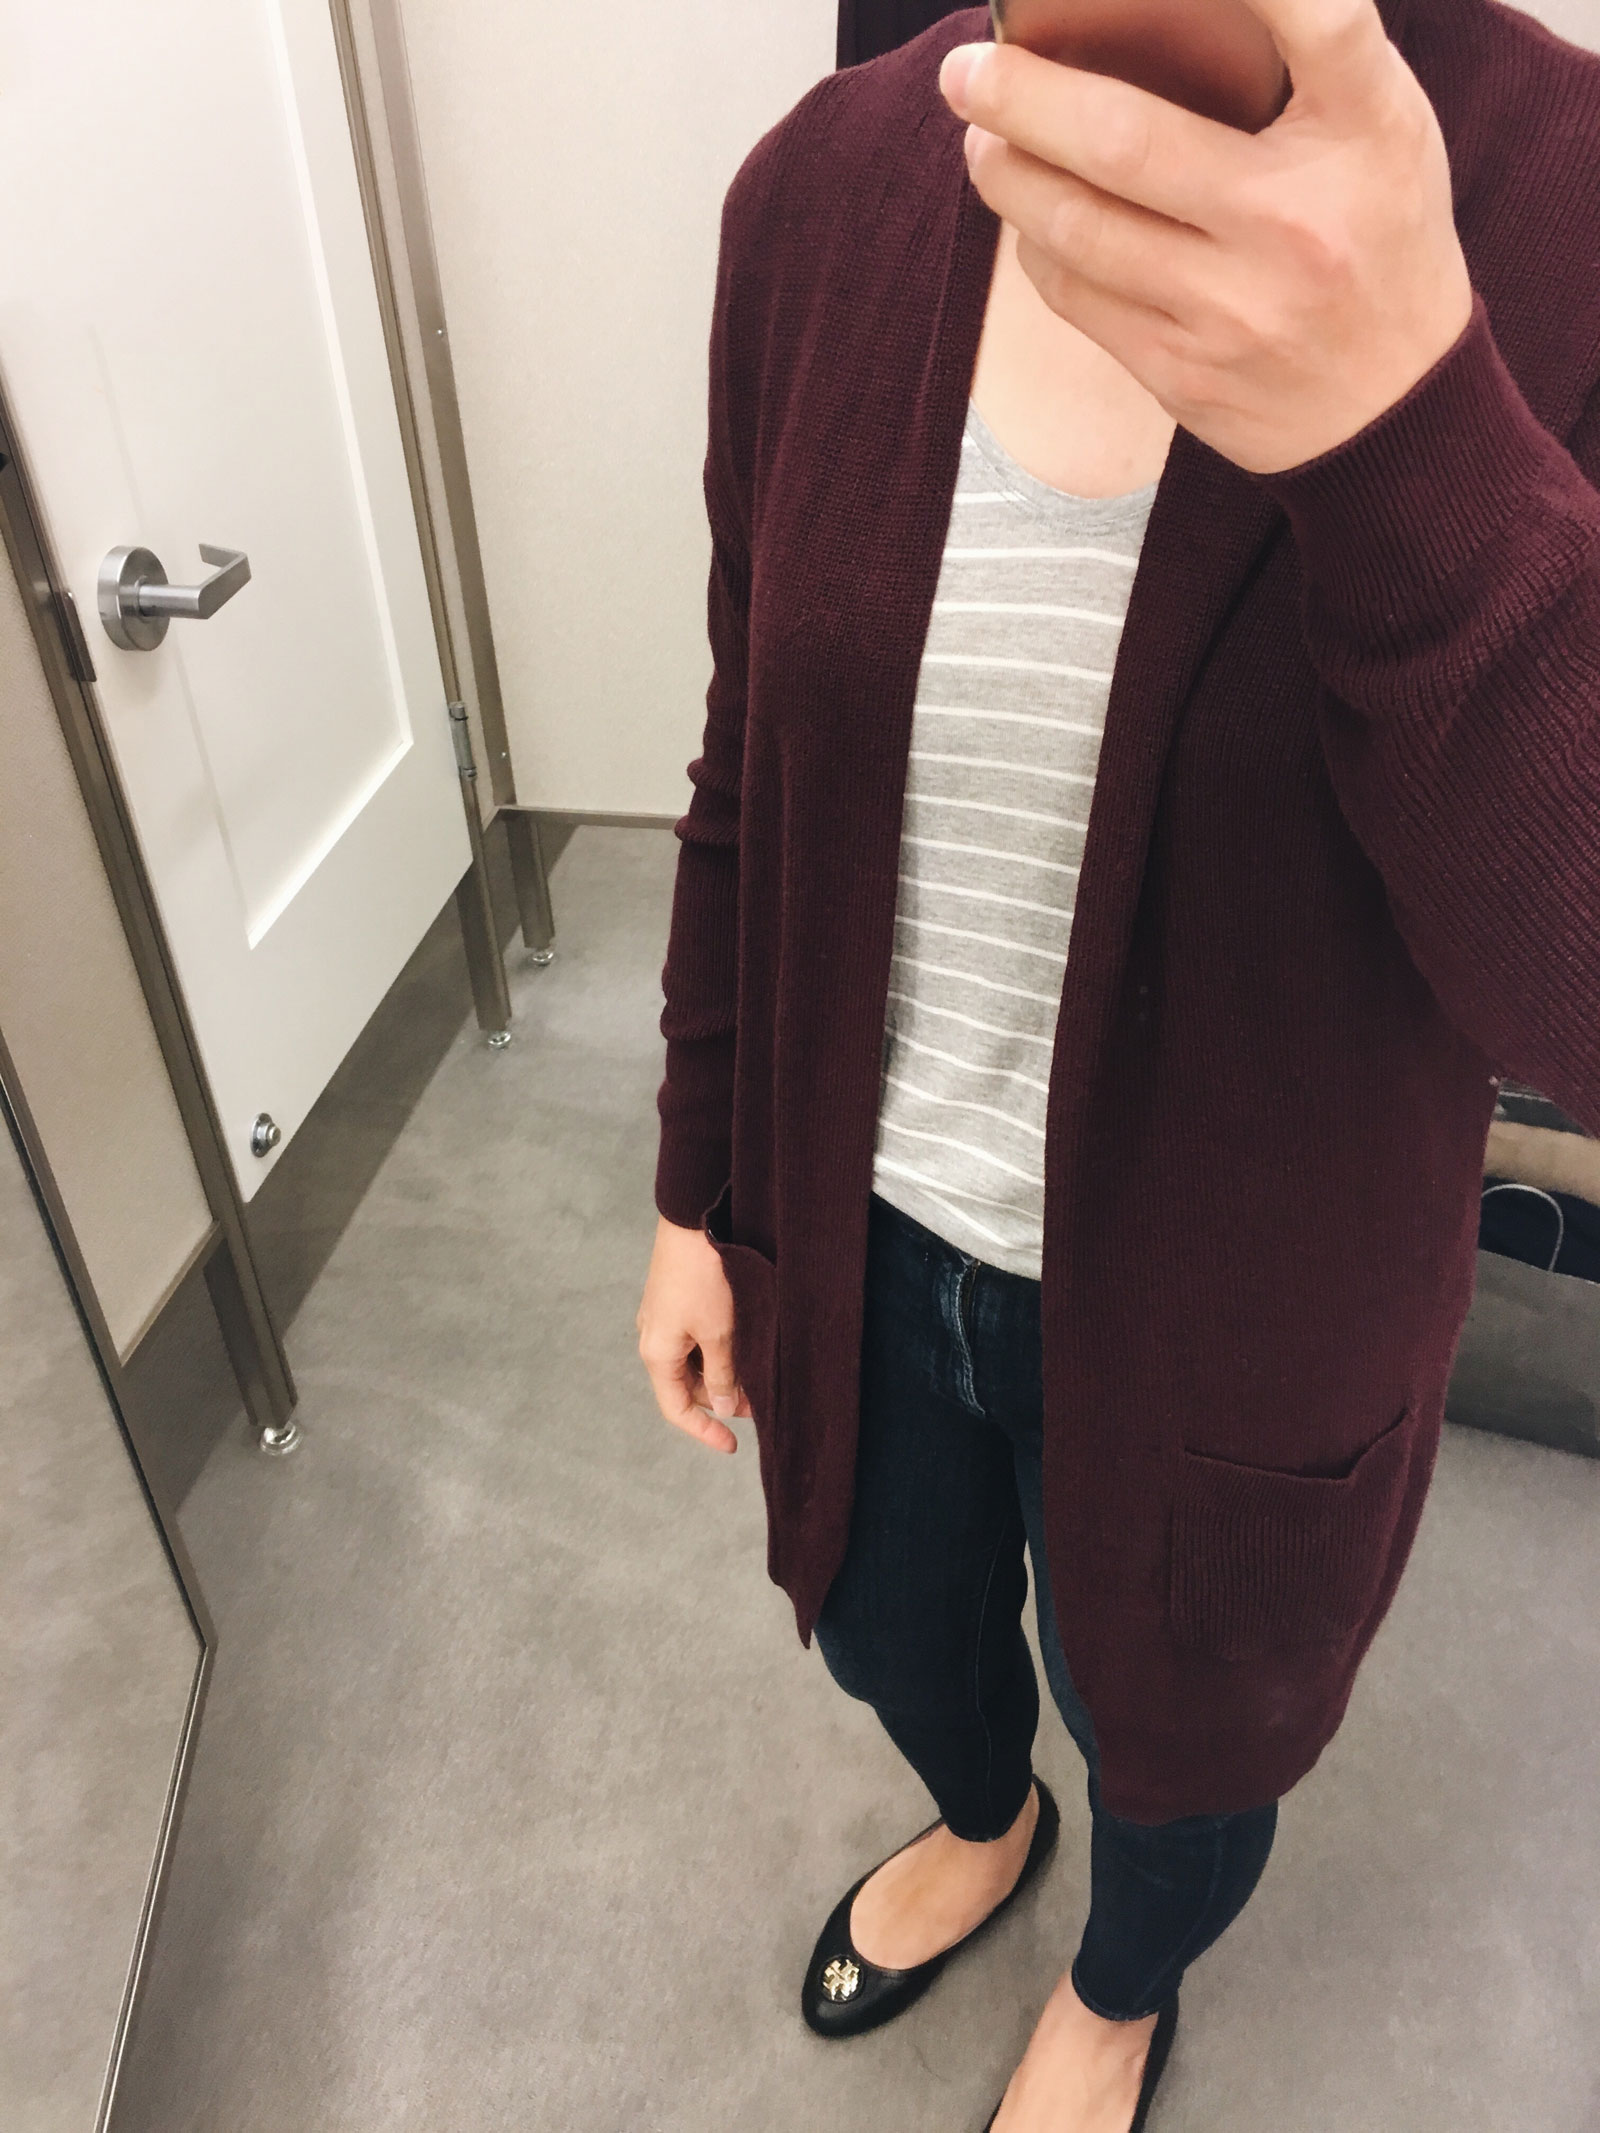 Burgundy open front cardigan (shop here: http://fave.co/2wYwtzL) | grey striped shirt (shop here: http://fave.co/2xDzqTe) | see the full looks at www.shoppingmycloset.com